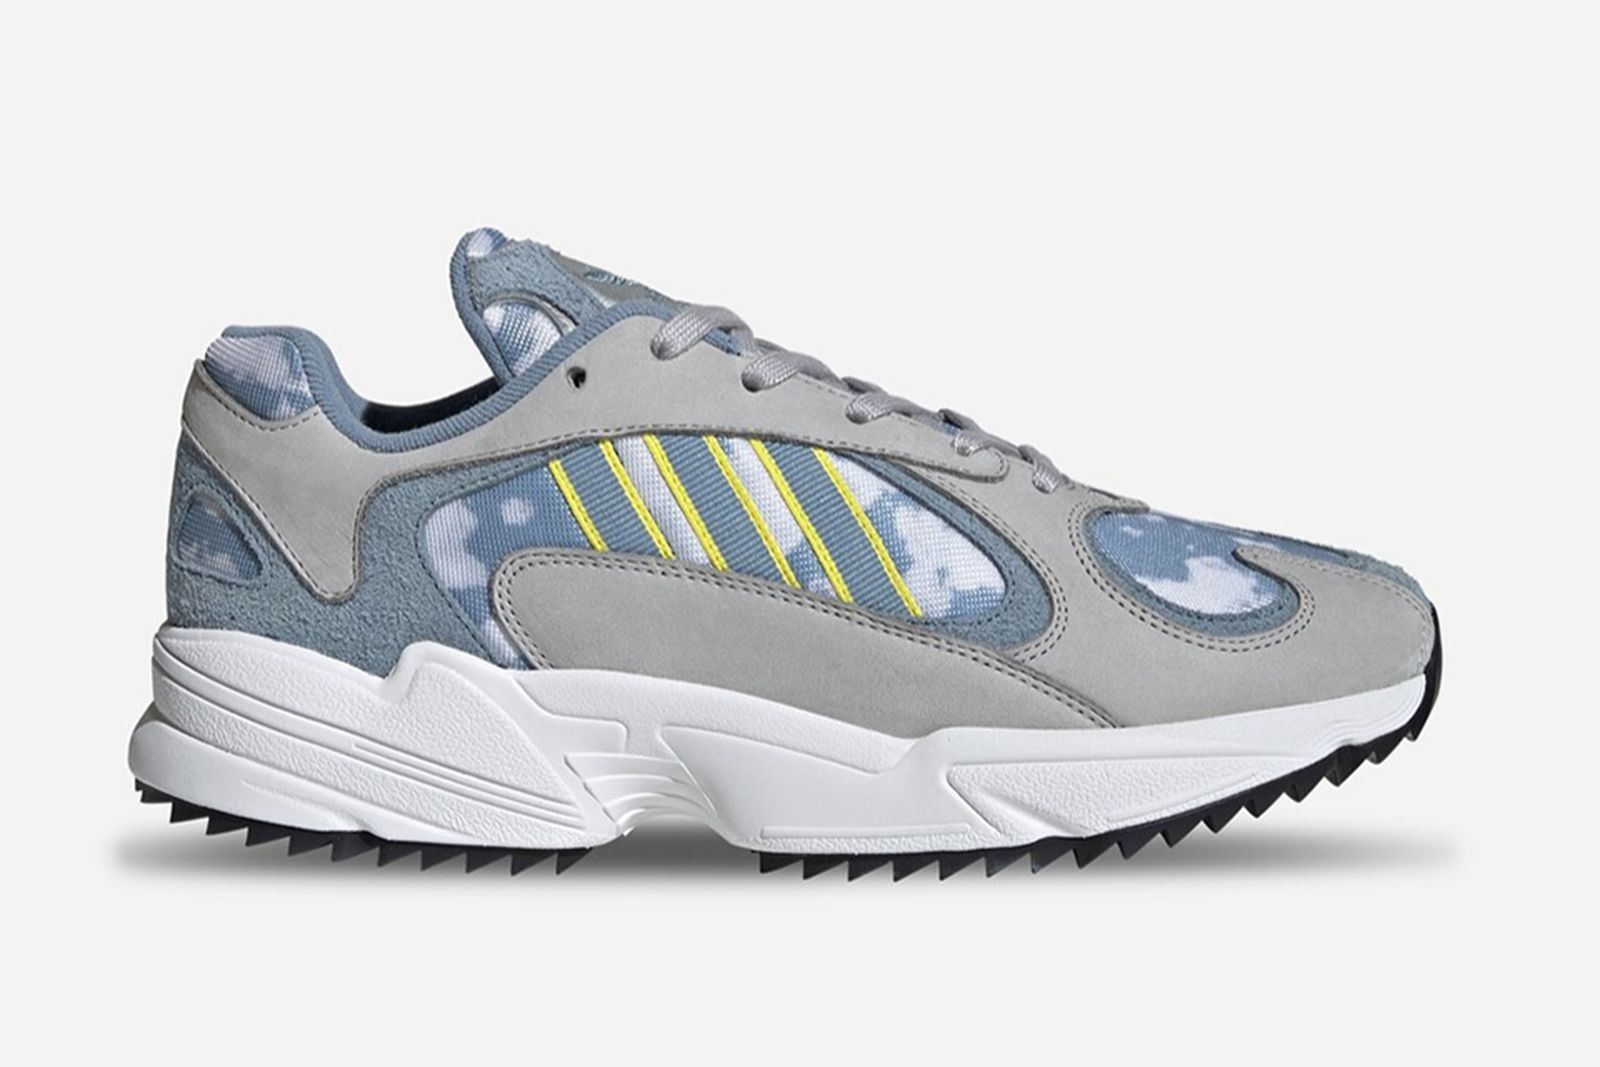 adidas in the sky pack release date price adidas FYW S-97 adidas Yung 1